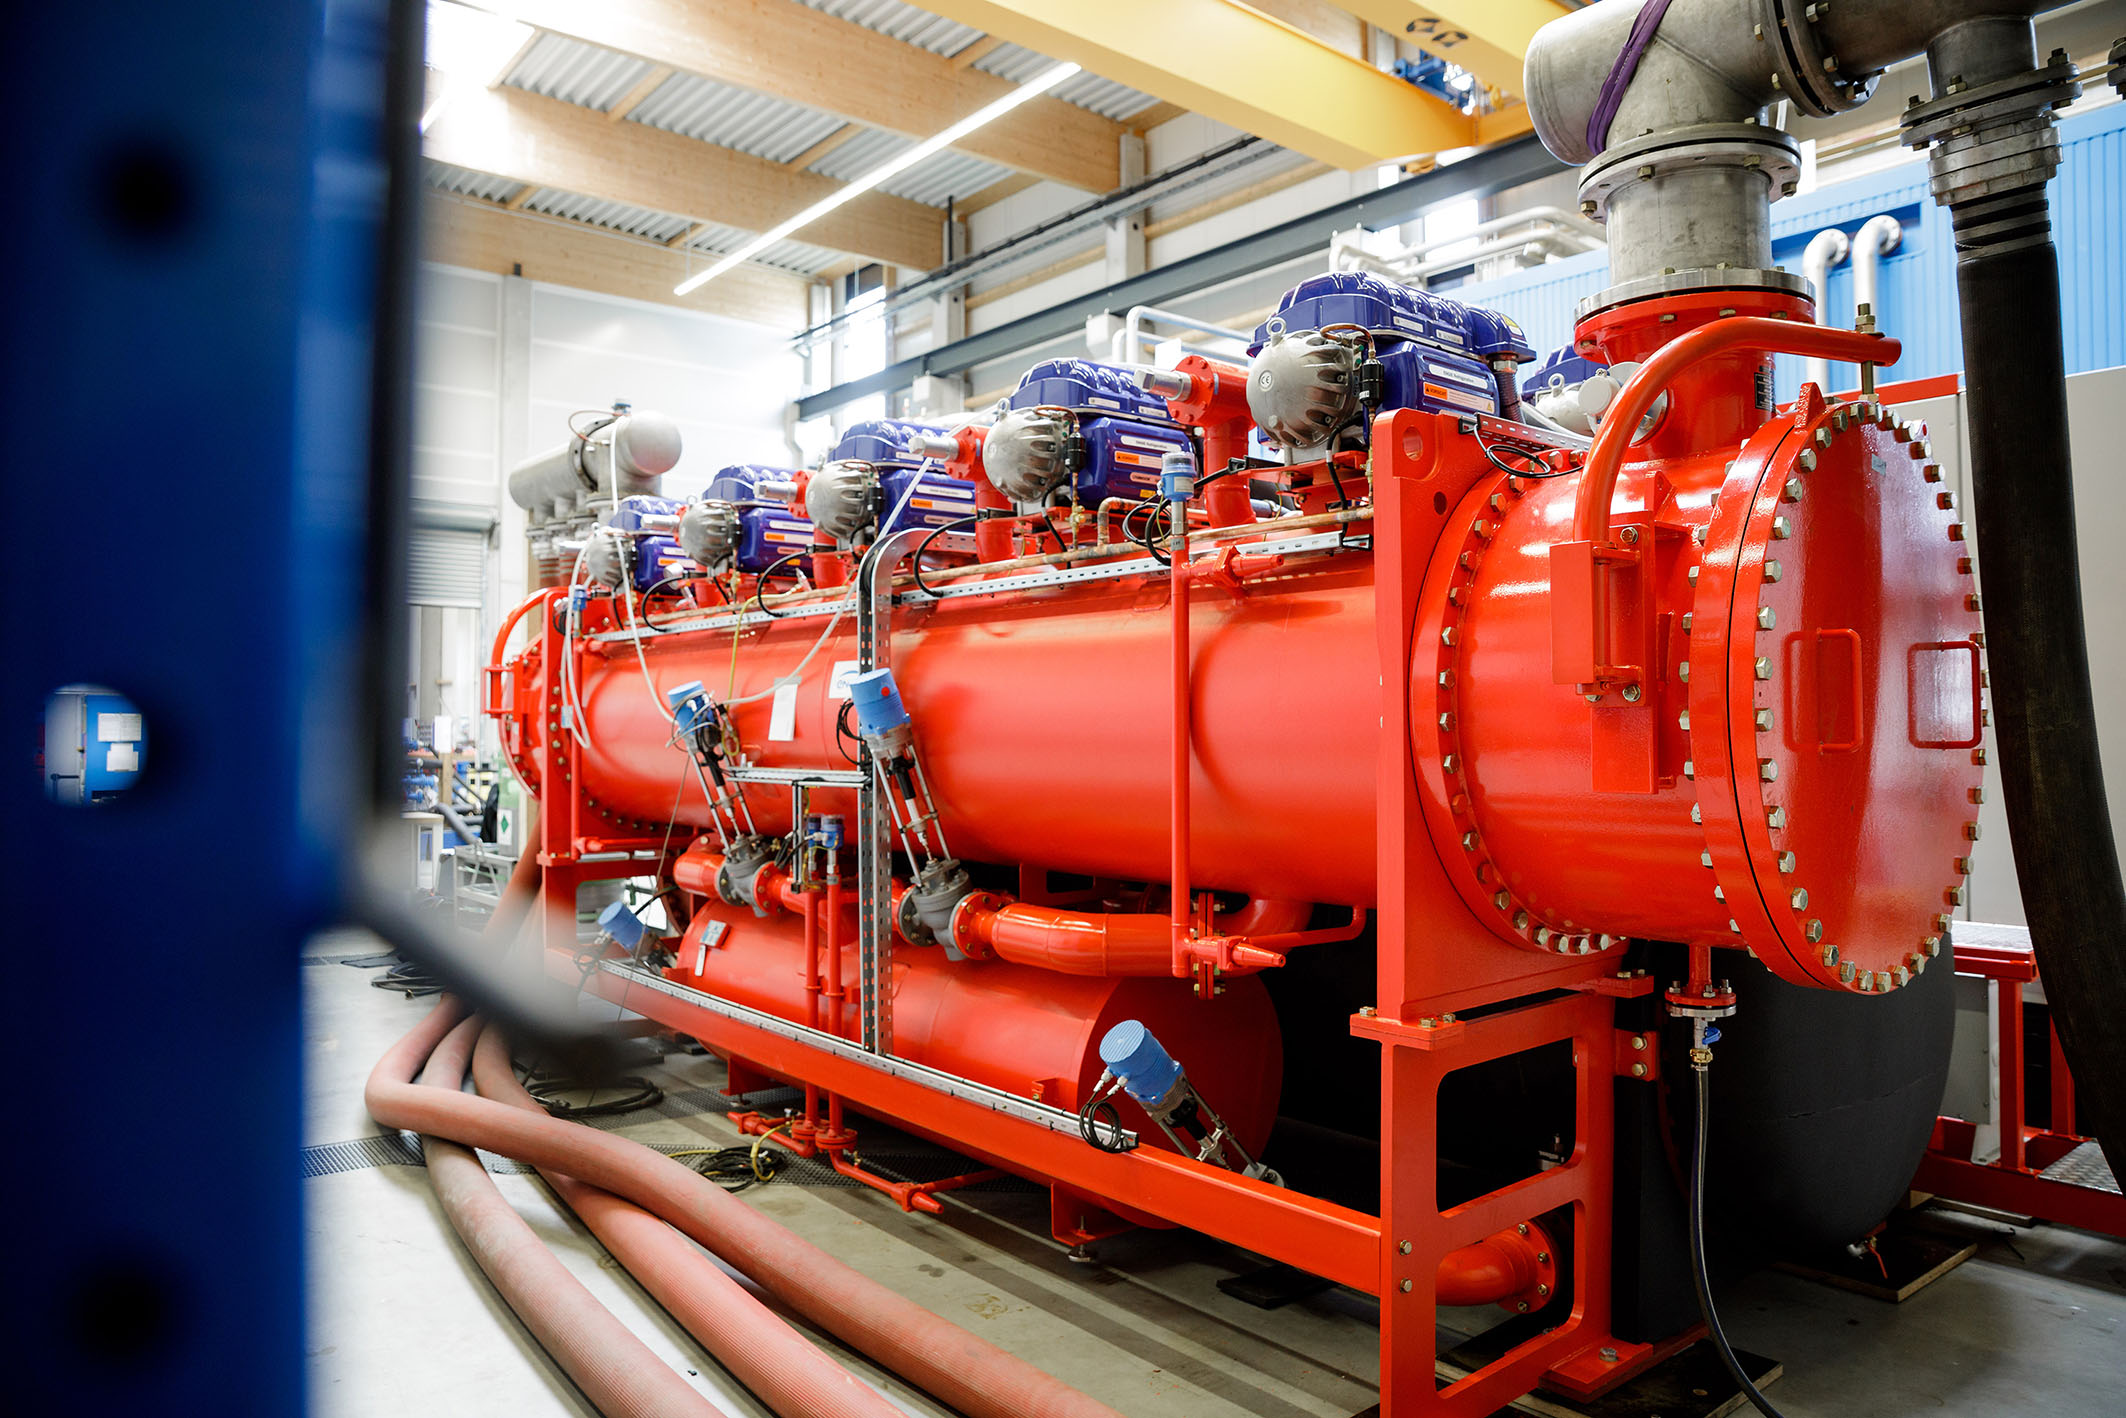 ENGIE Refrigeration bets on sustainable refrigerant